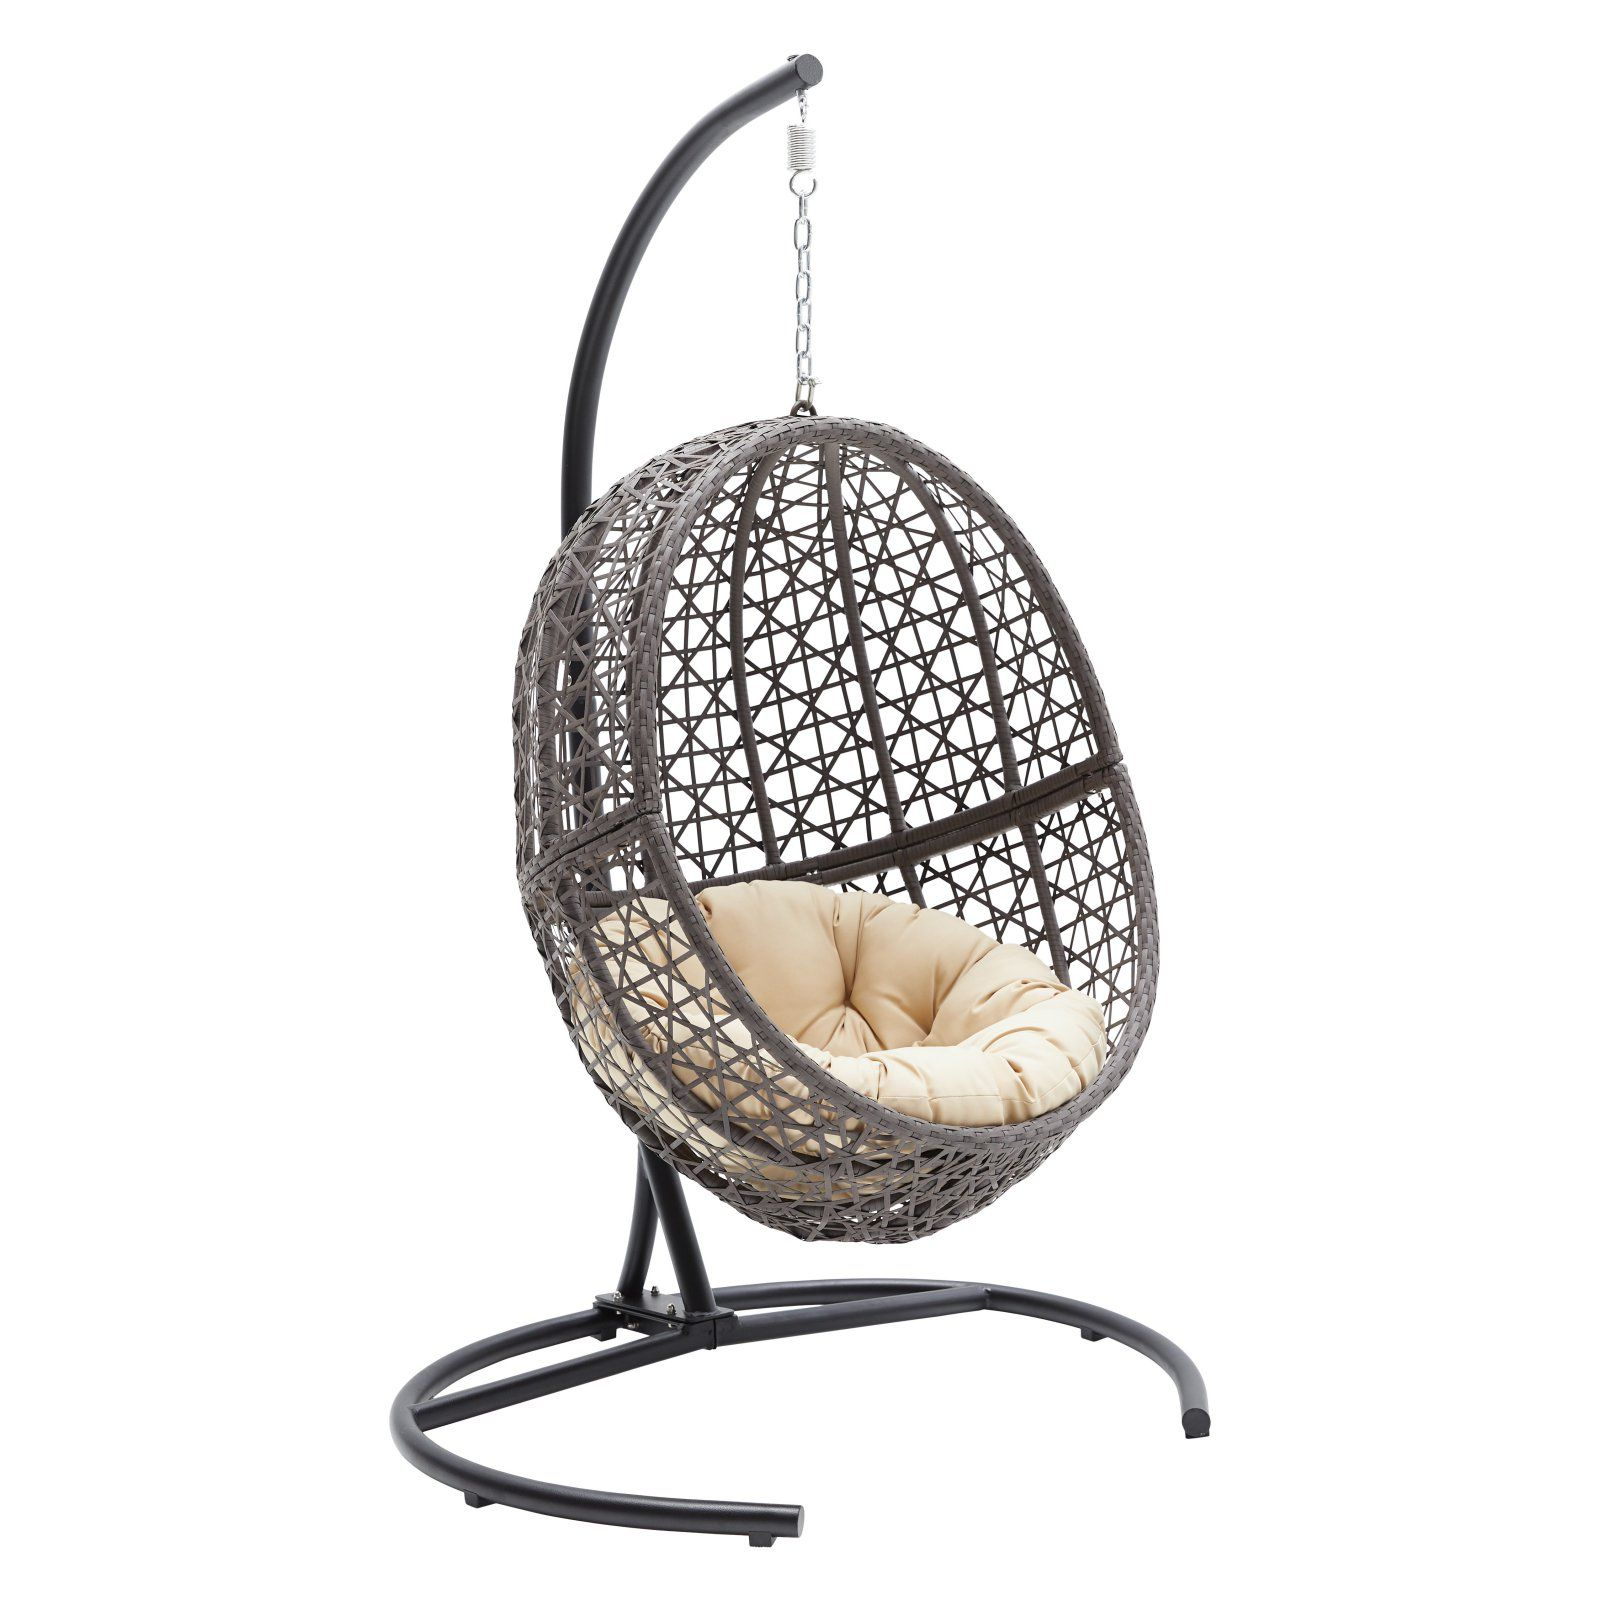 Belham Living Resin Wicker Hanging Egg Chair with Cushion